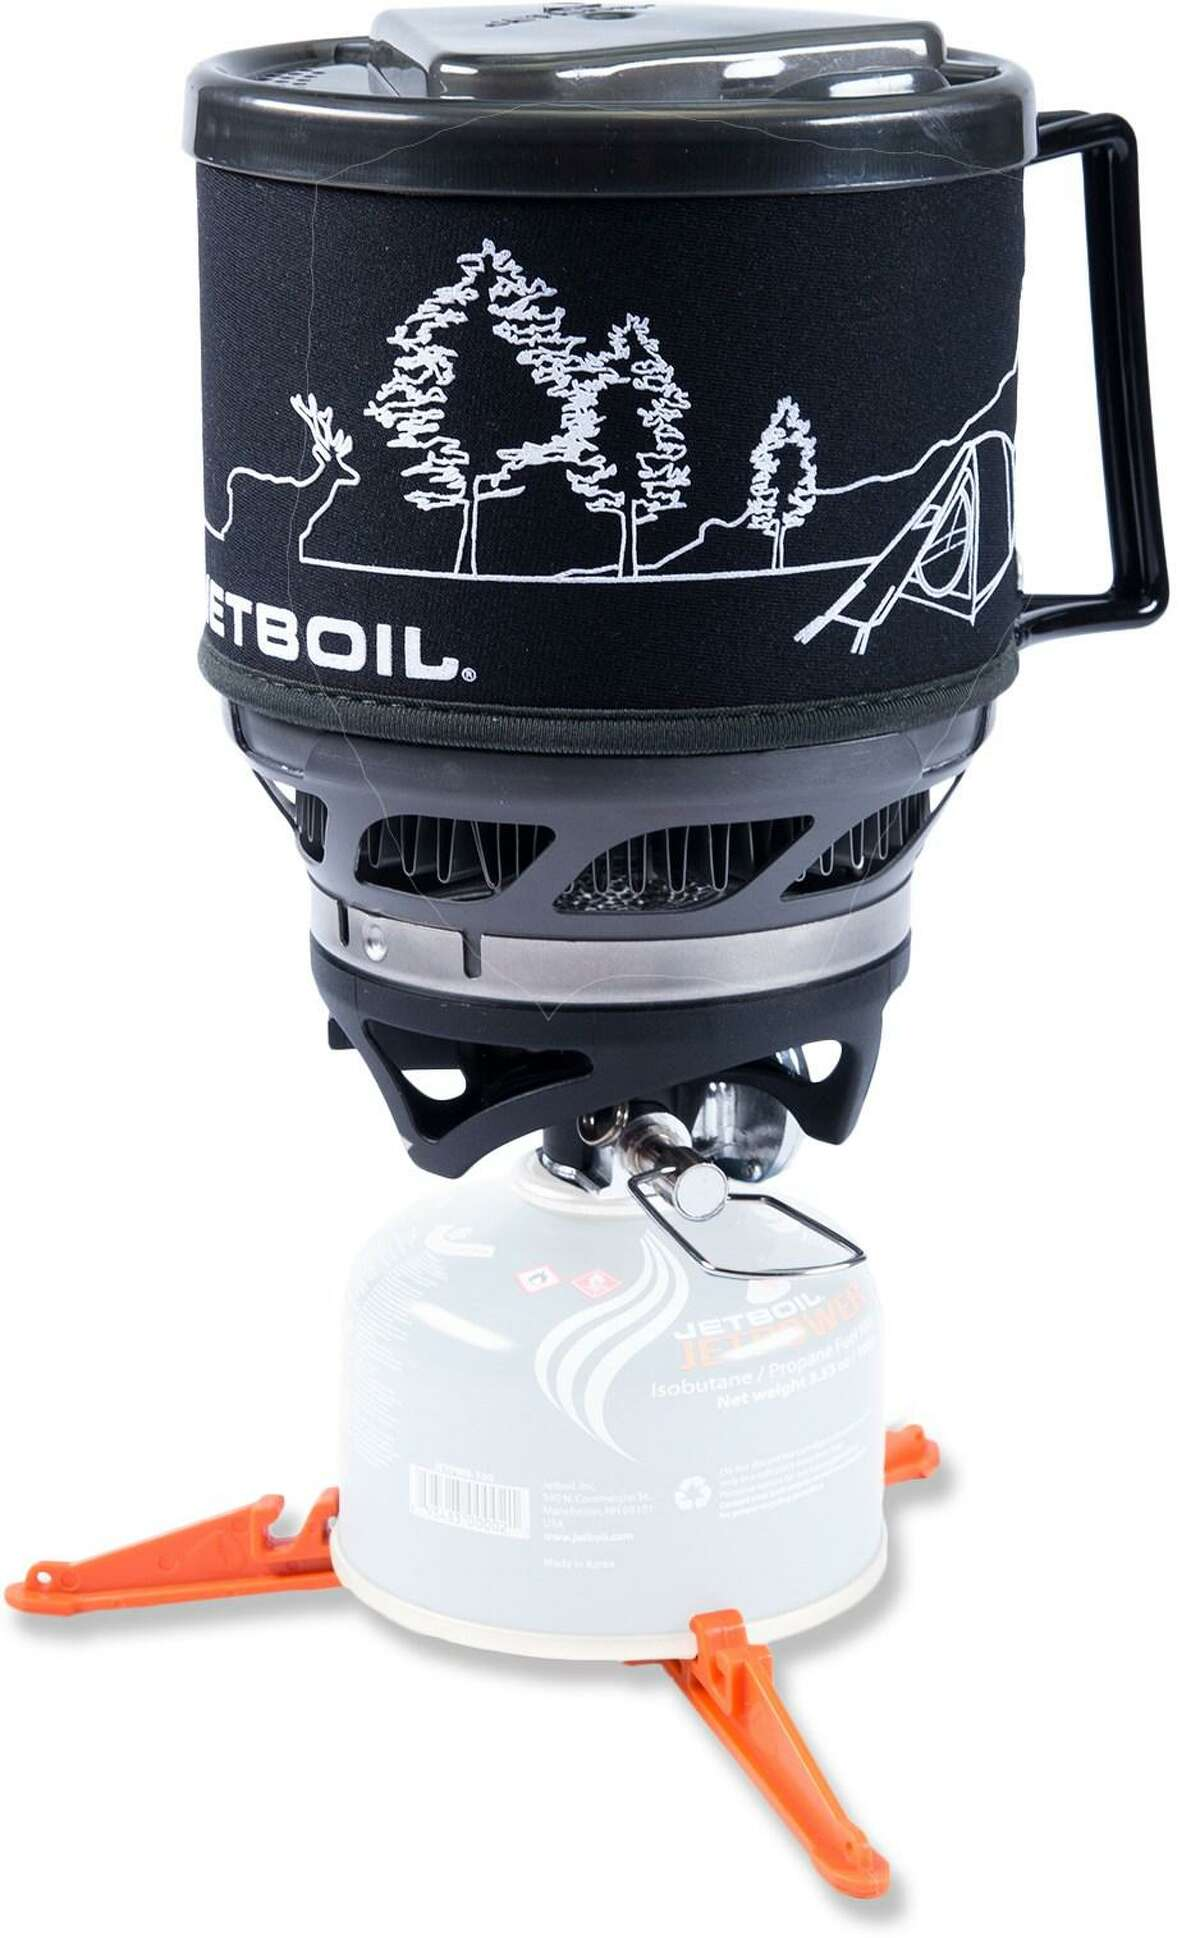 Jetboil MiniMo Cooking System, $129.95 from www.rei.com